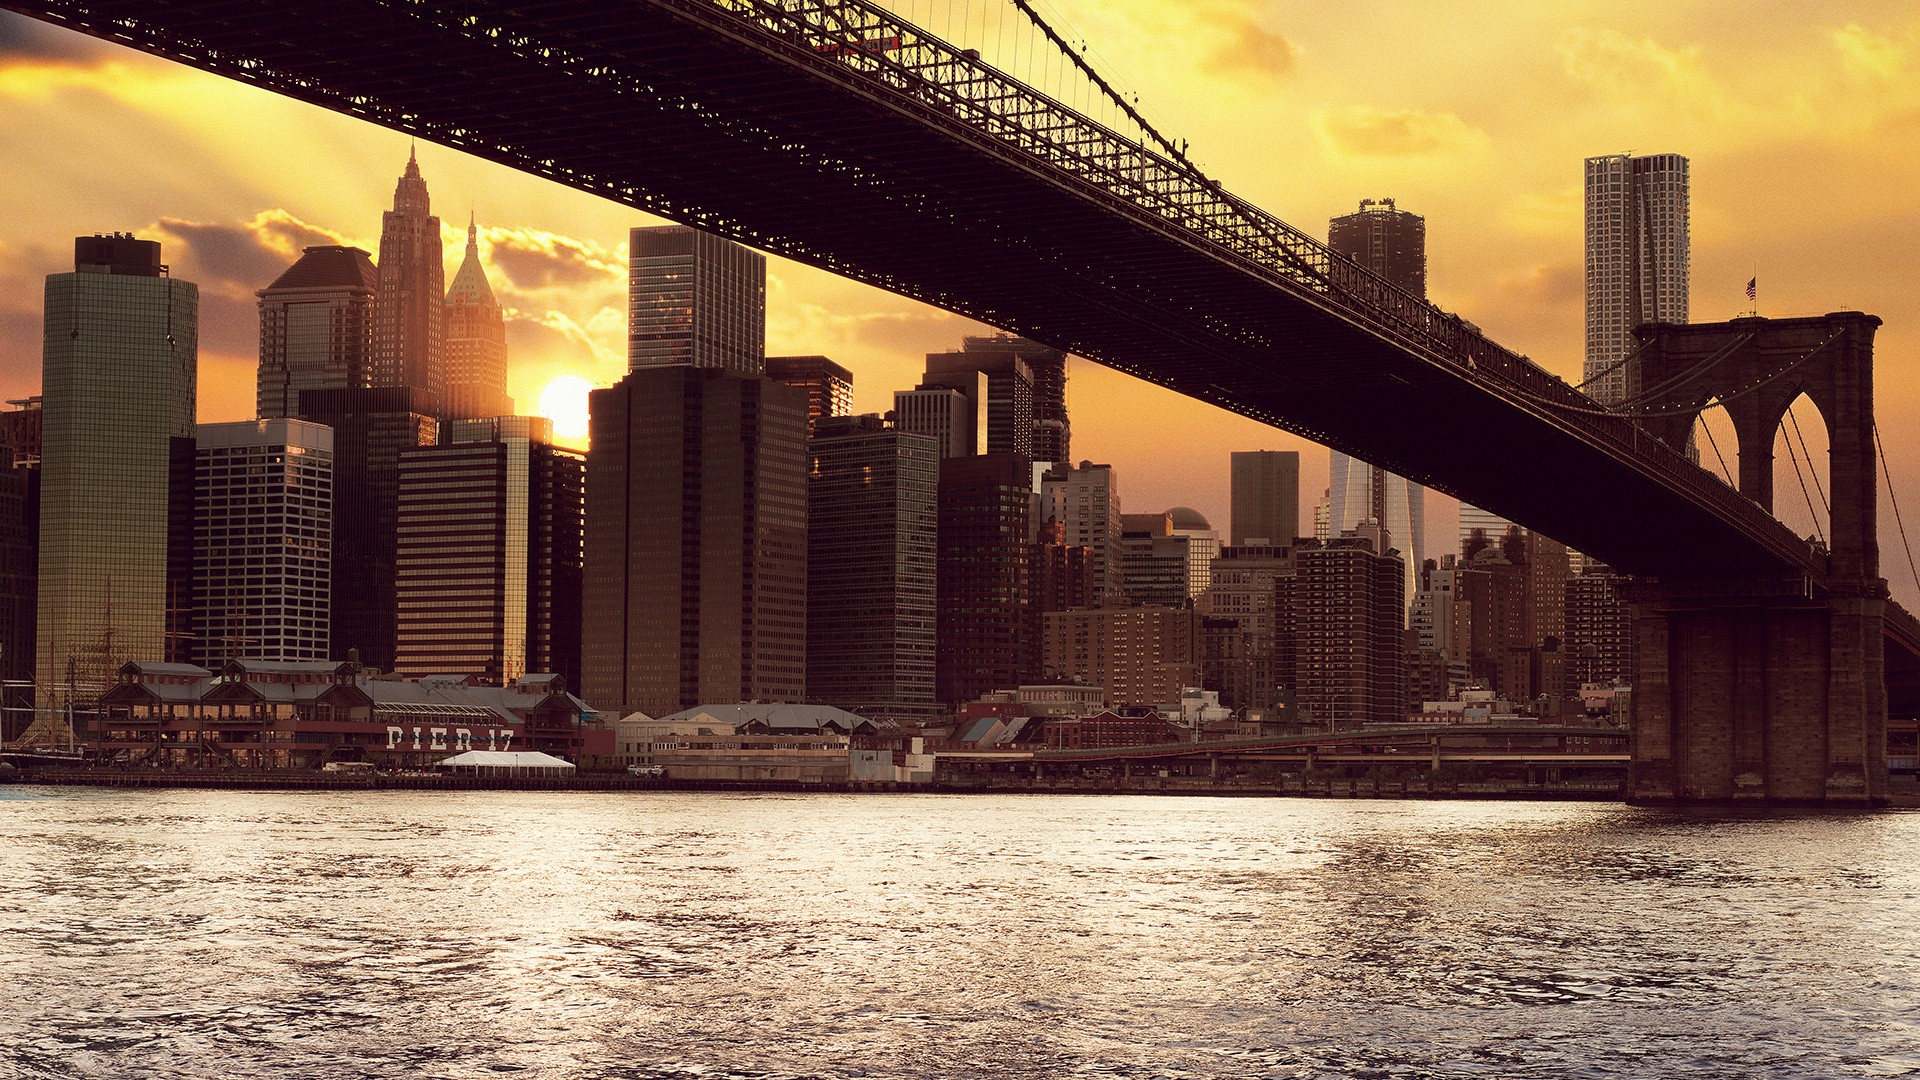 A beautiful view of New York from under the bridge